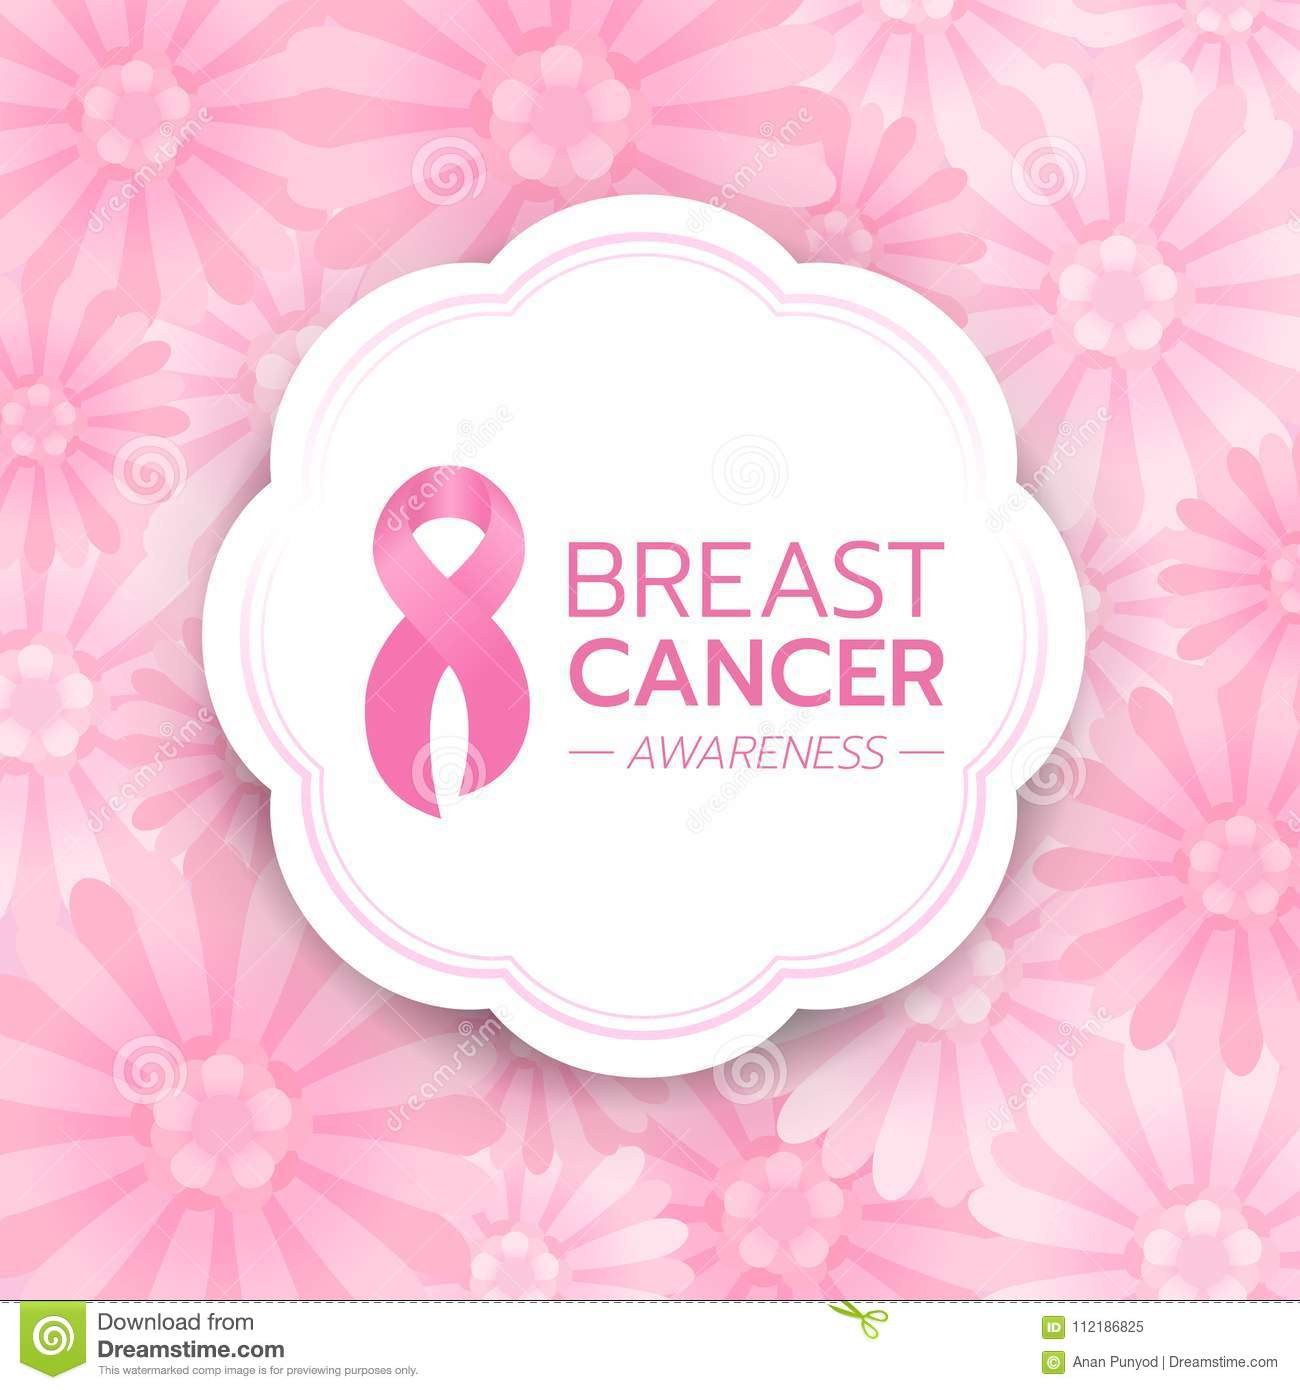 Breast cancer Awareness text and pink ribbon sign in white circle banner on abstract pink flower background vector design